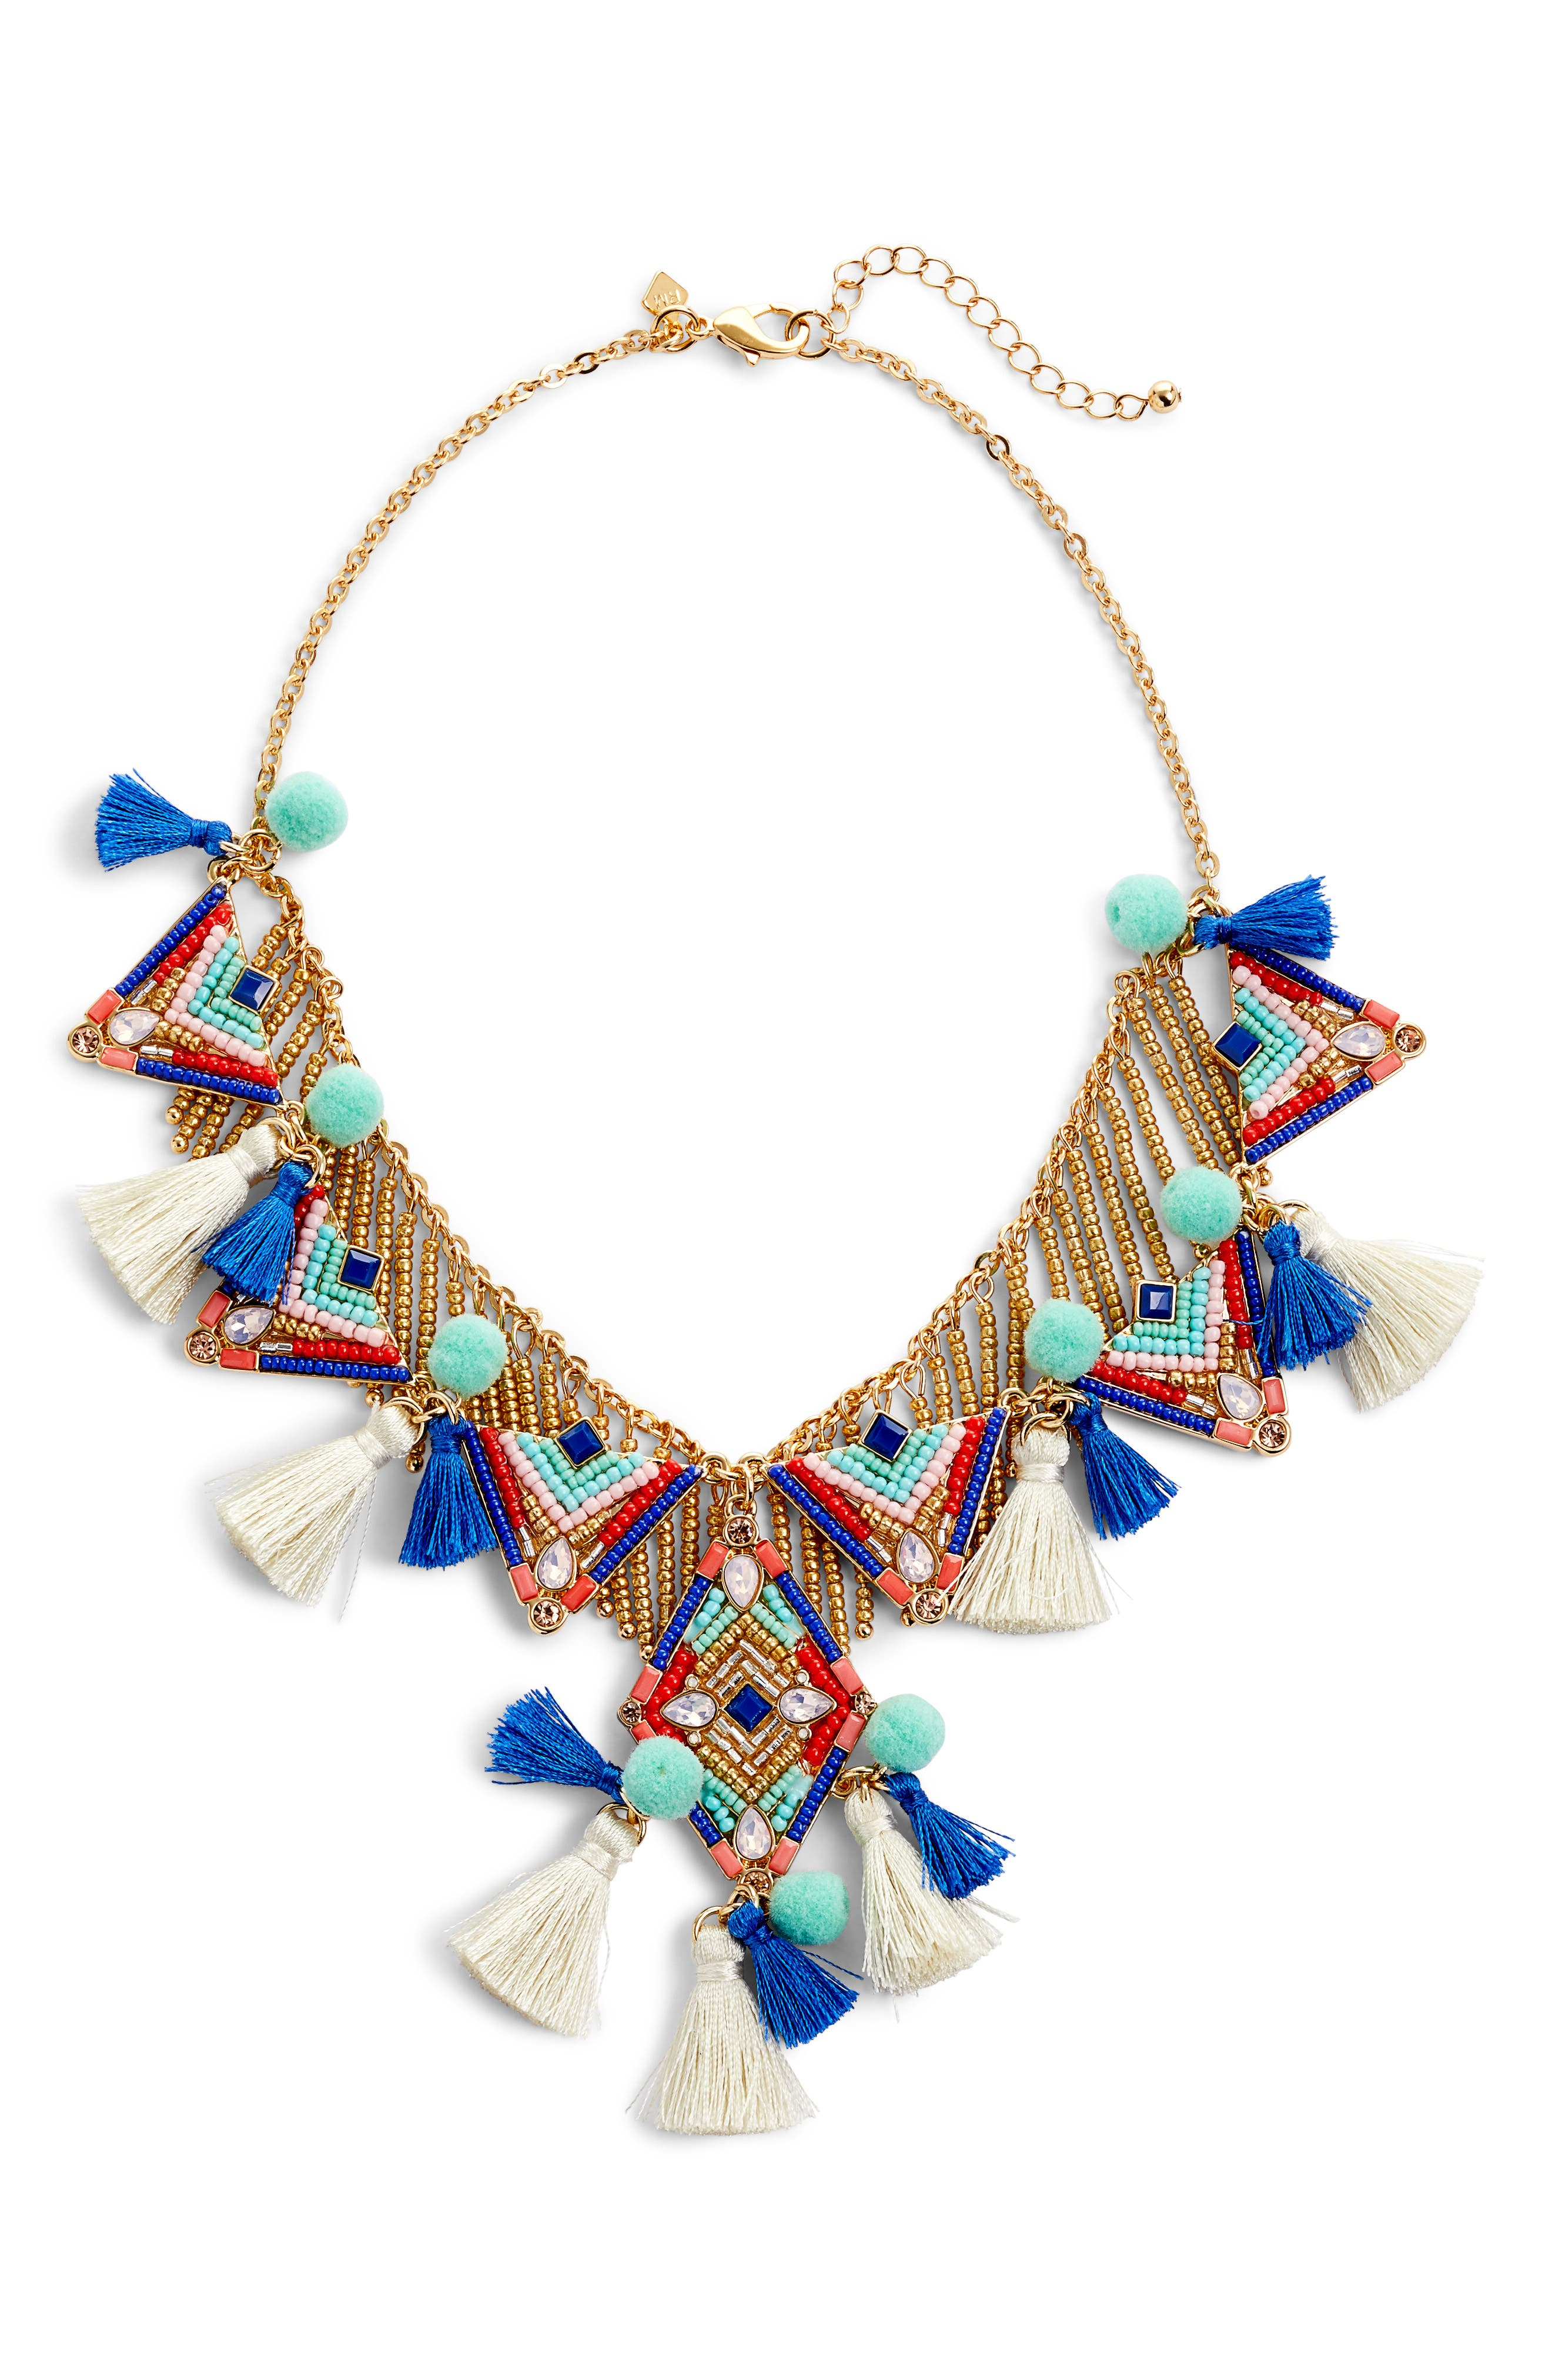 Geo Drama Statement Necklace,                             Alternate thumbnail 2, color,                             Multi/ Gold